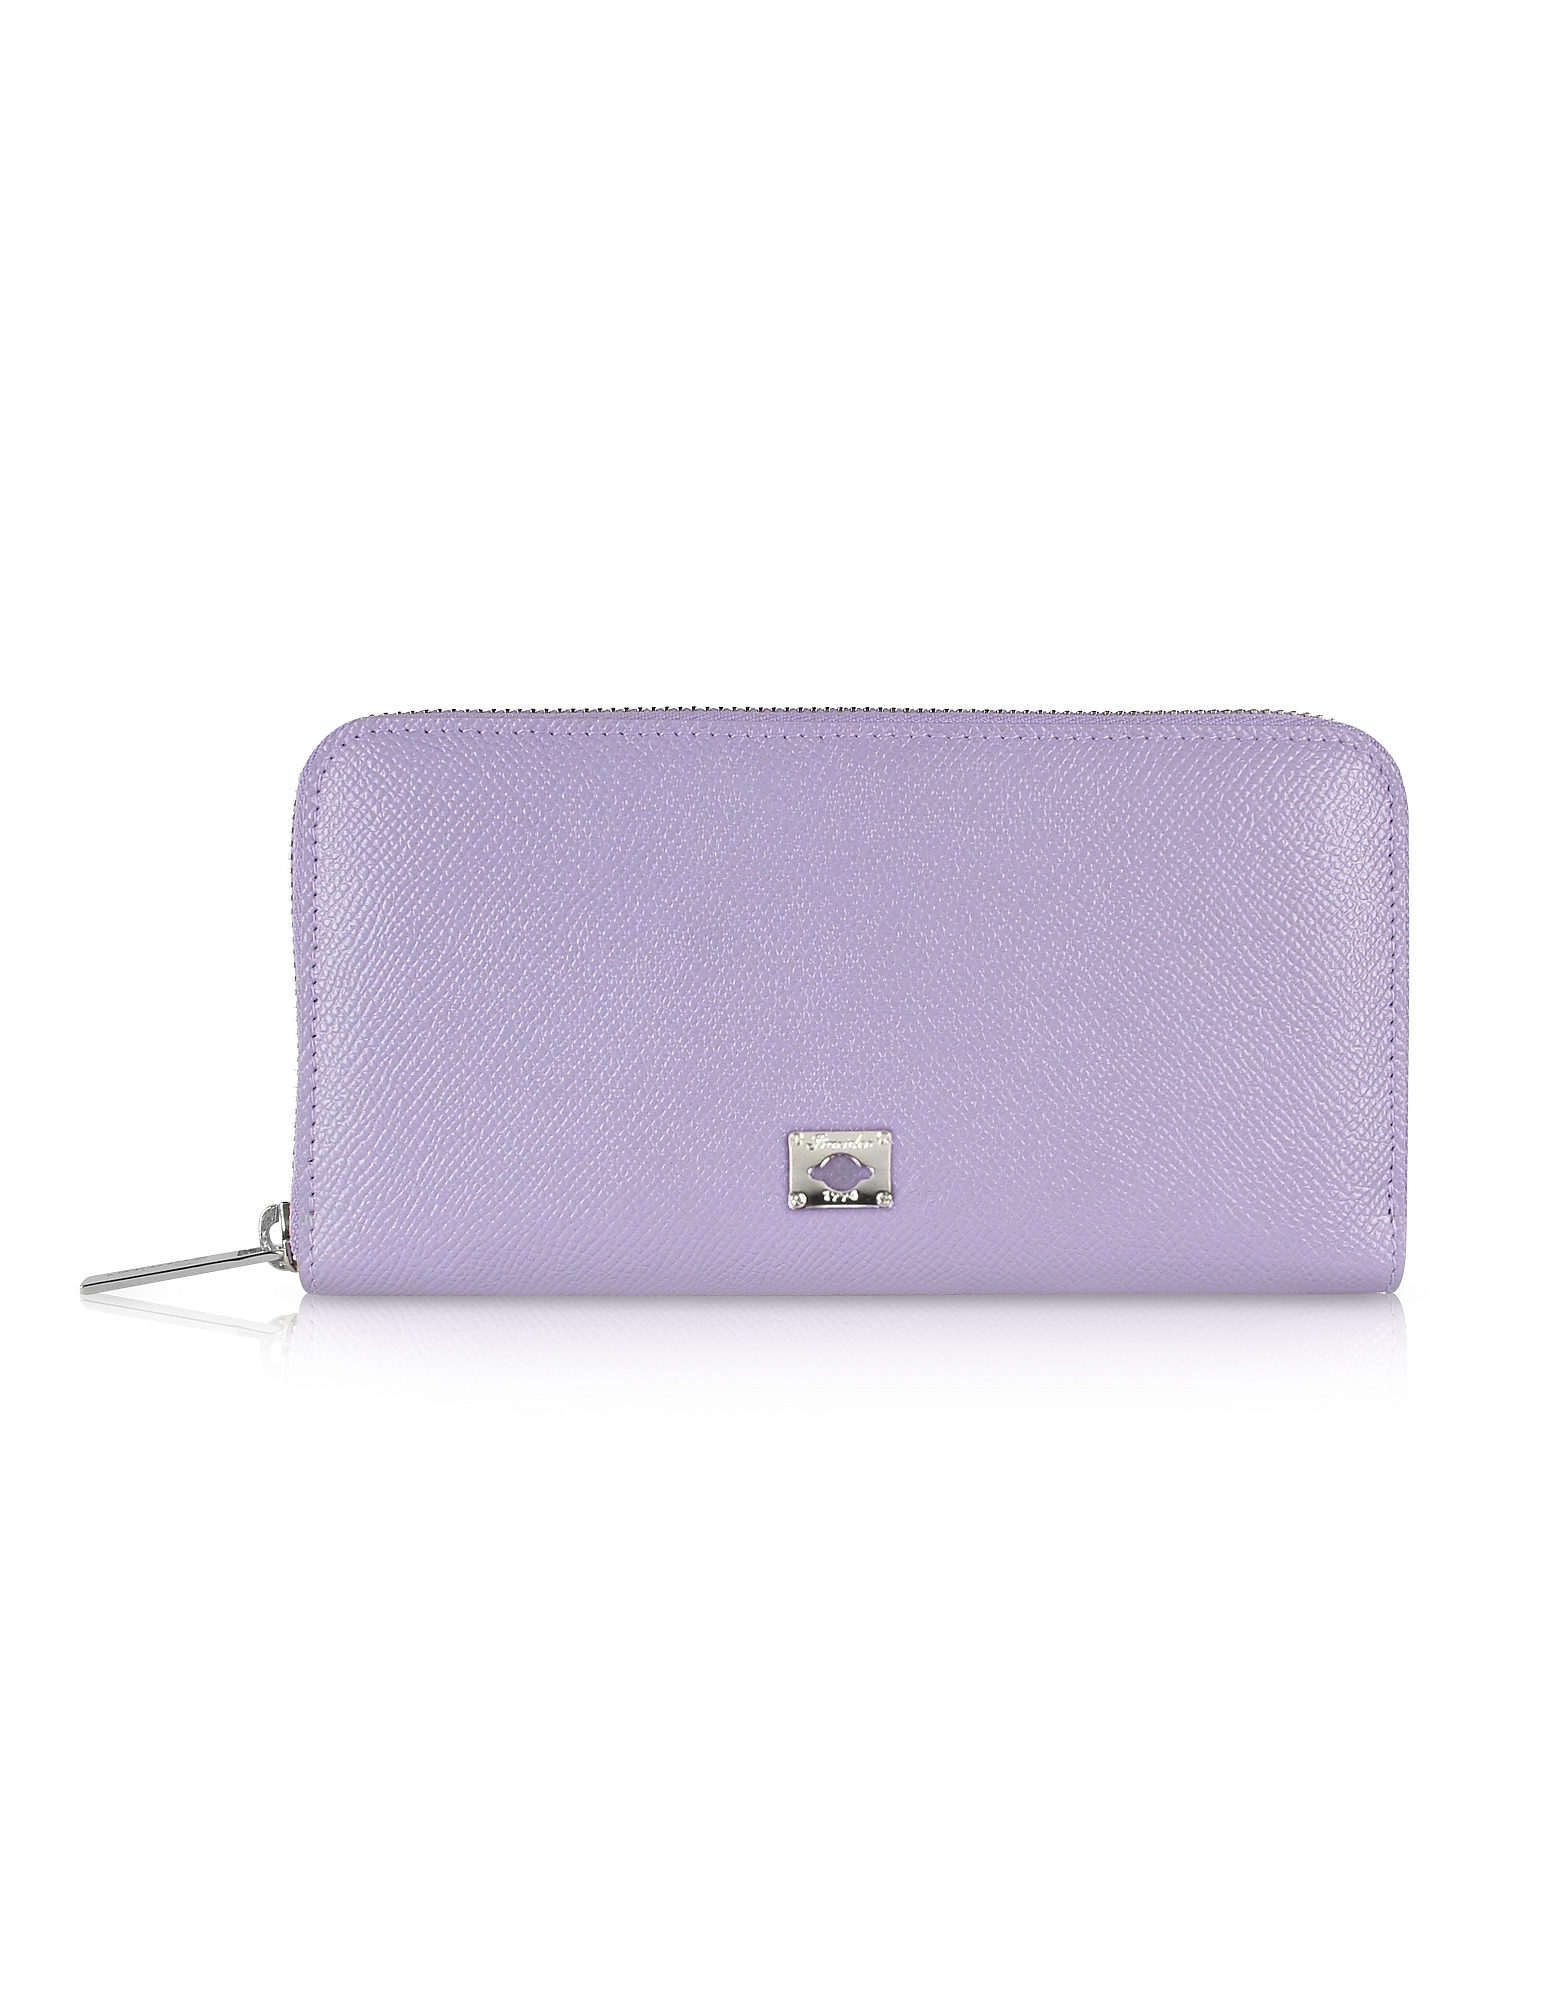 Pineider Wallets, City Chic - Women's Zip Around Calfskin Wallet